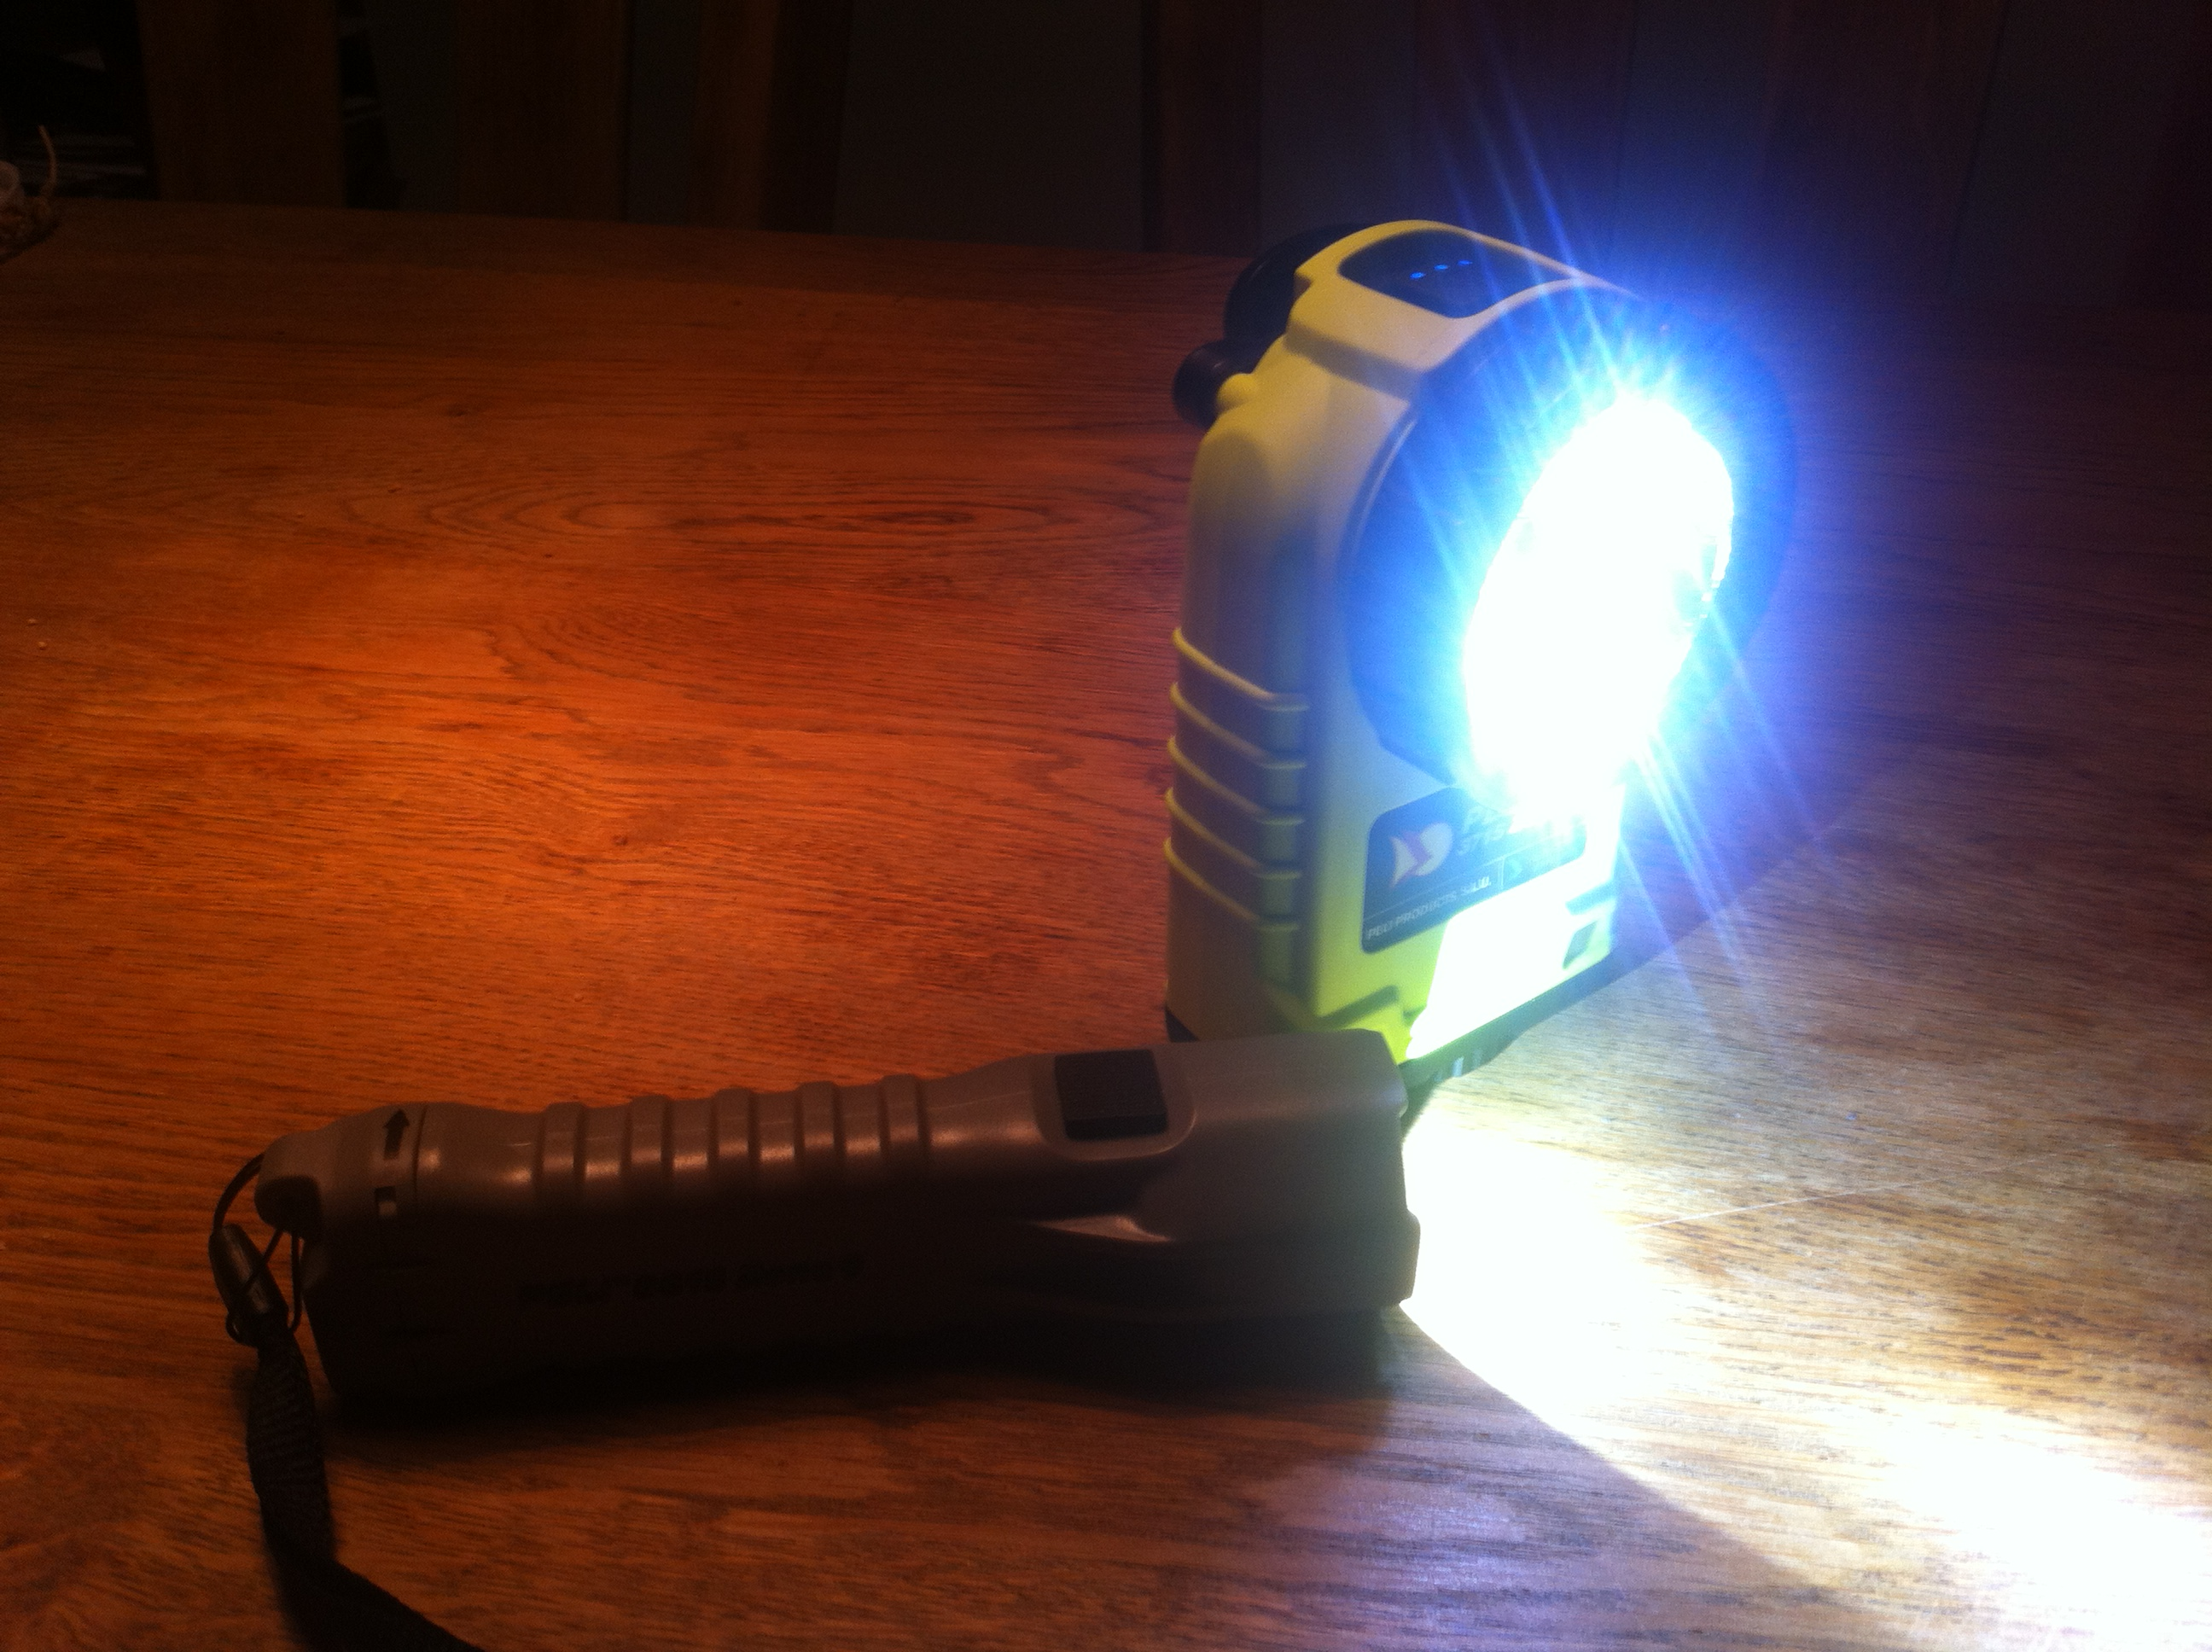 Peli 3315 Led Light review by firefighter betatester Guido Siebers (1)